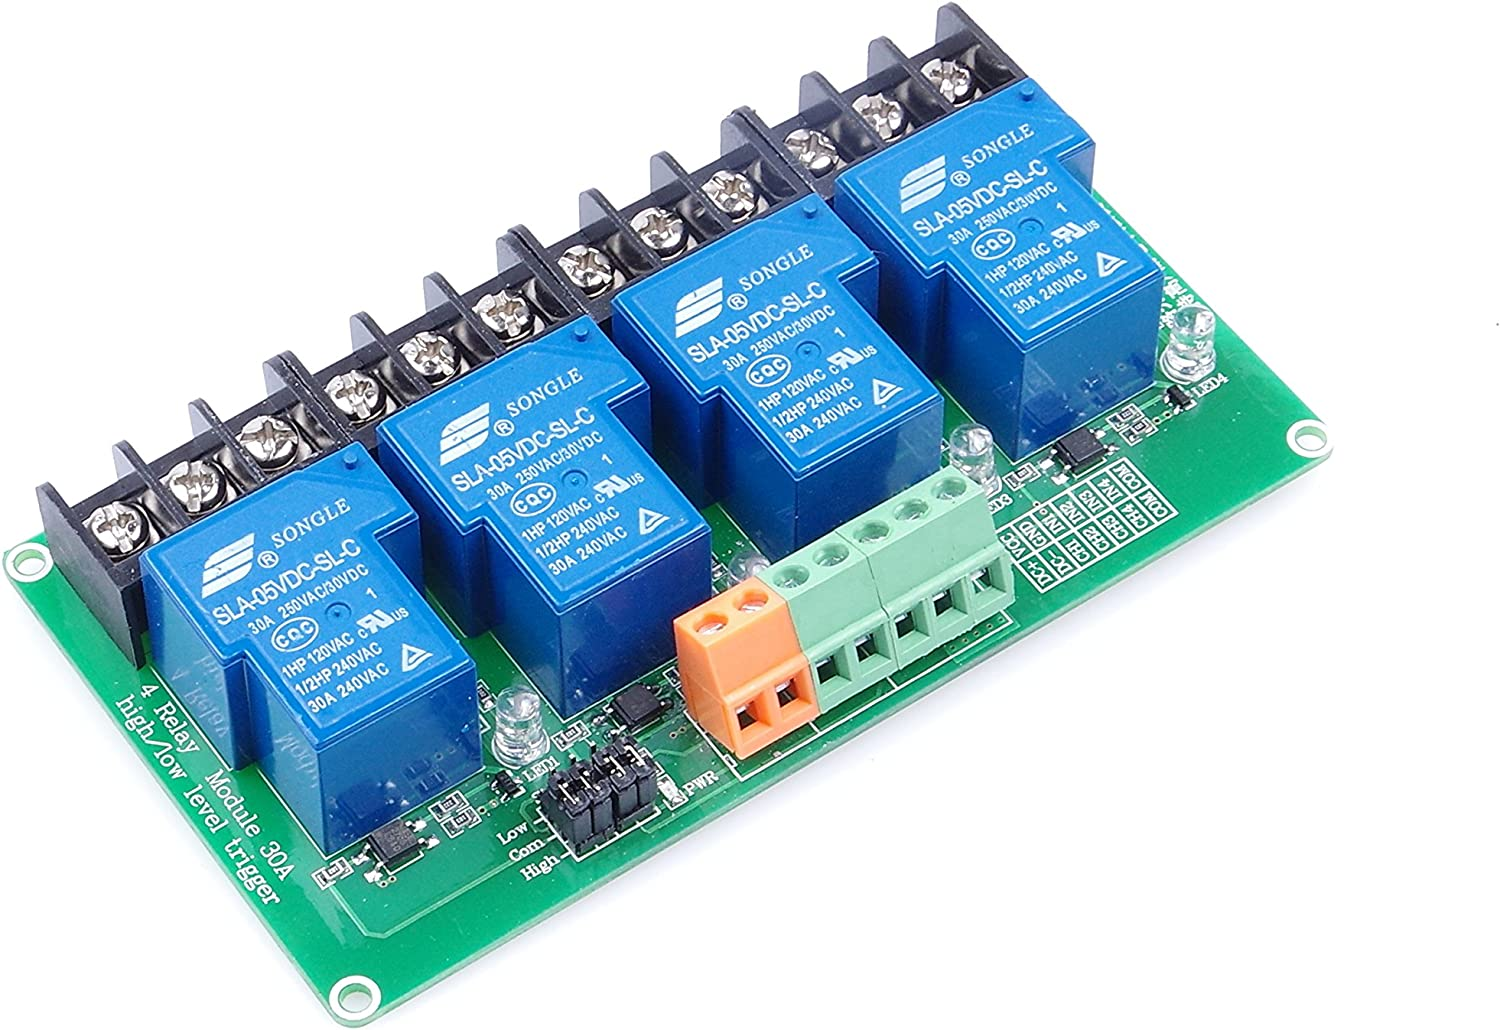 KNACRO 4-Channel DC 5V Relay Module High Low Level Triggering Optocoupler Isolation Load 30A DC 30V / AC 250V for PLC Automation Control, Industrial System Control, Arduino (DC 5V)-Pack of 25Pcs